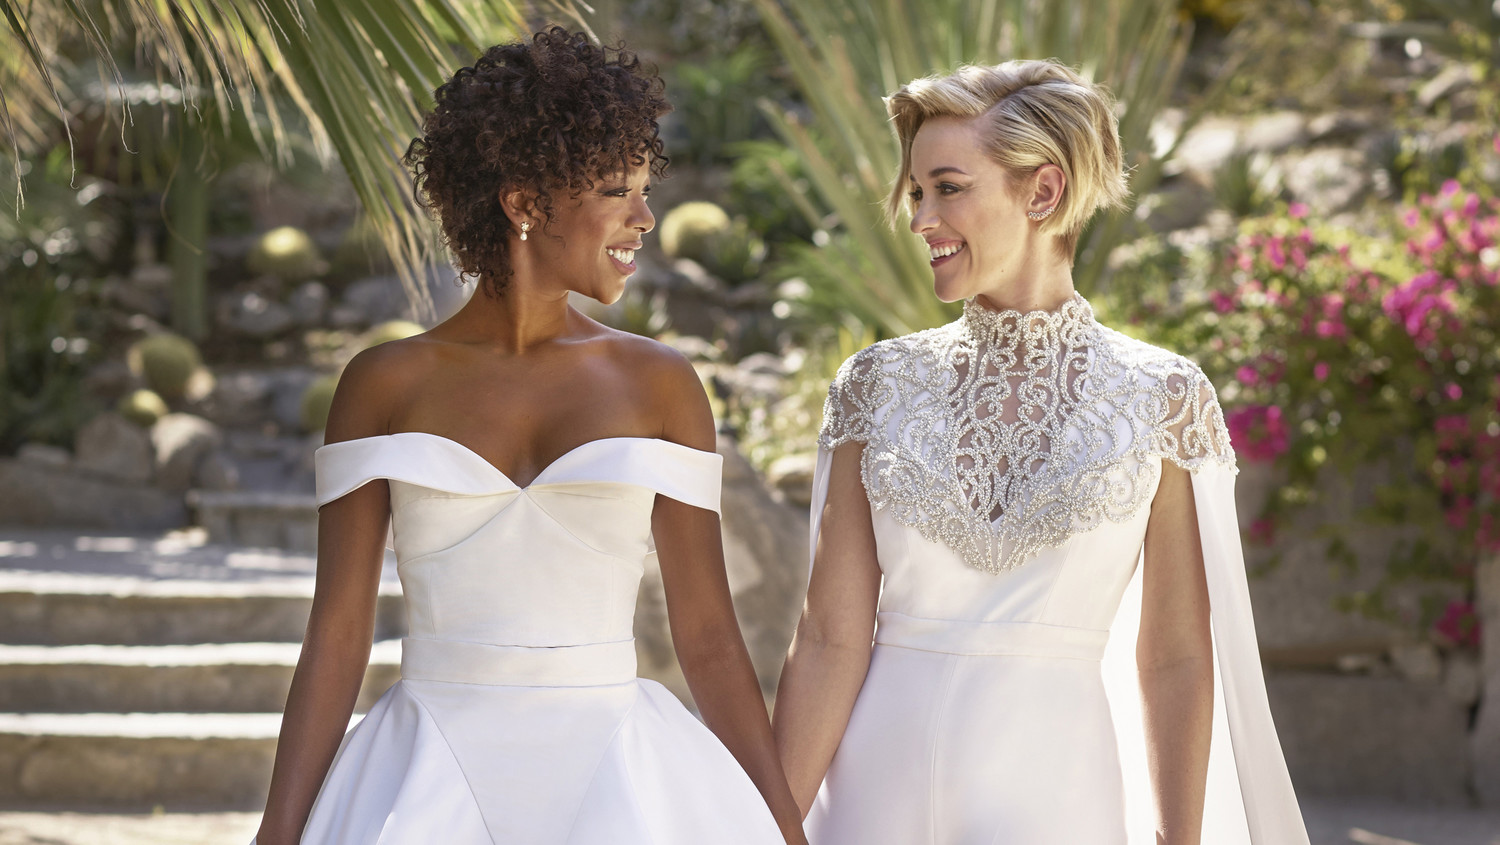 Exclusive Samira Wiley And Lauren Morelli Are Married